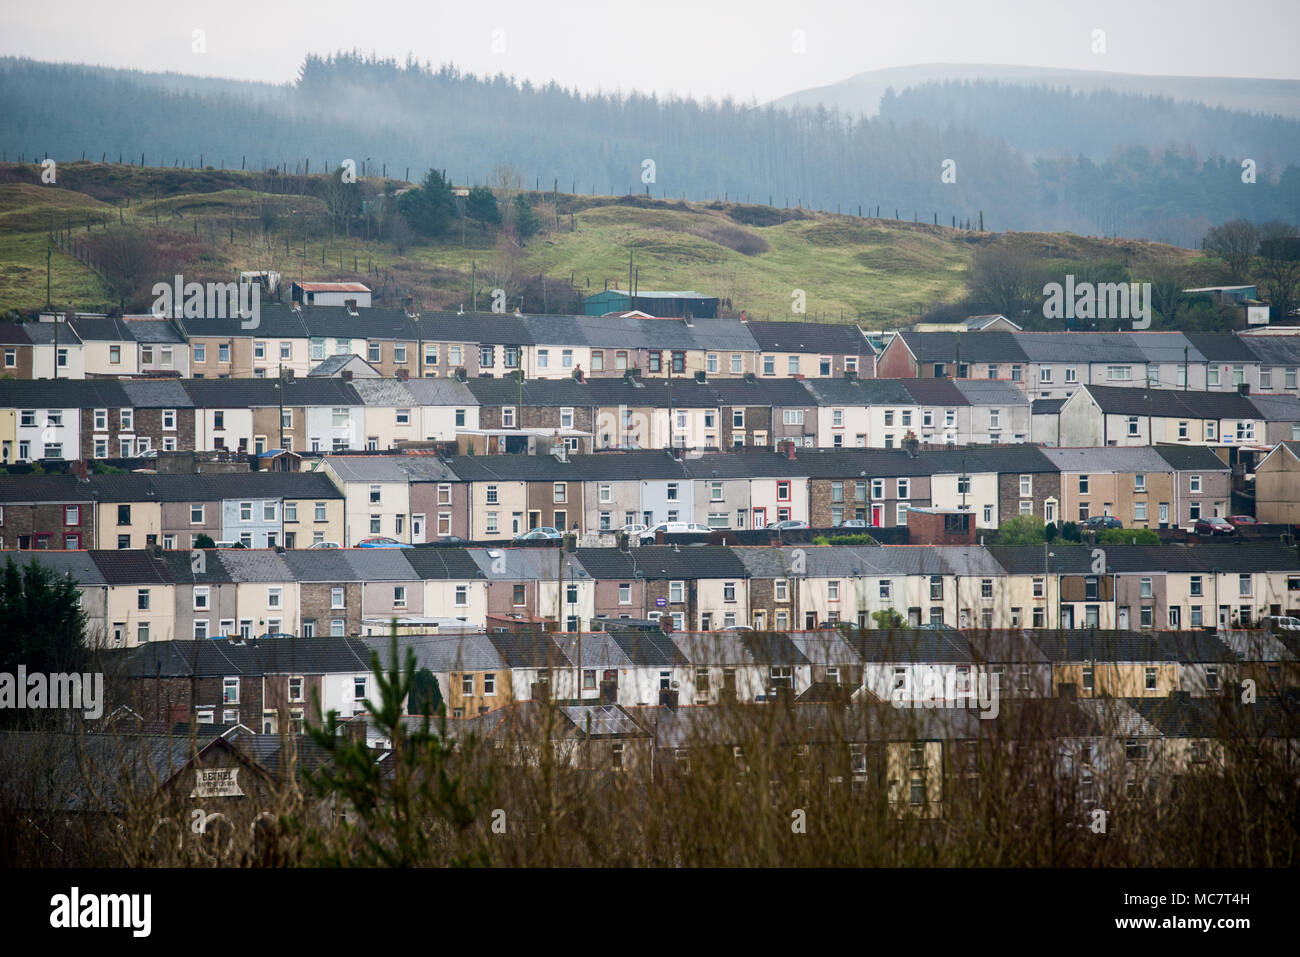 Tredegar Terraces in the South Welsh valleys. The seat of Aneurin Bevan, the architect of our National Health Service. - Stock Image